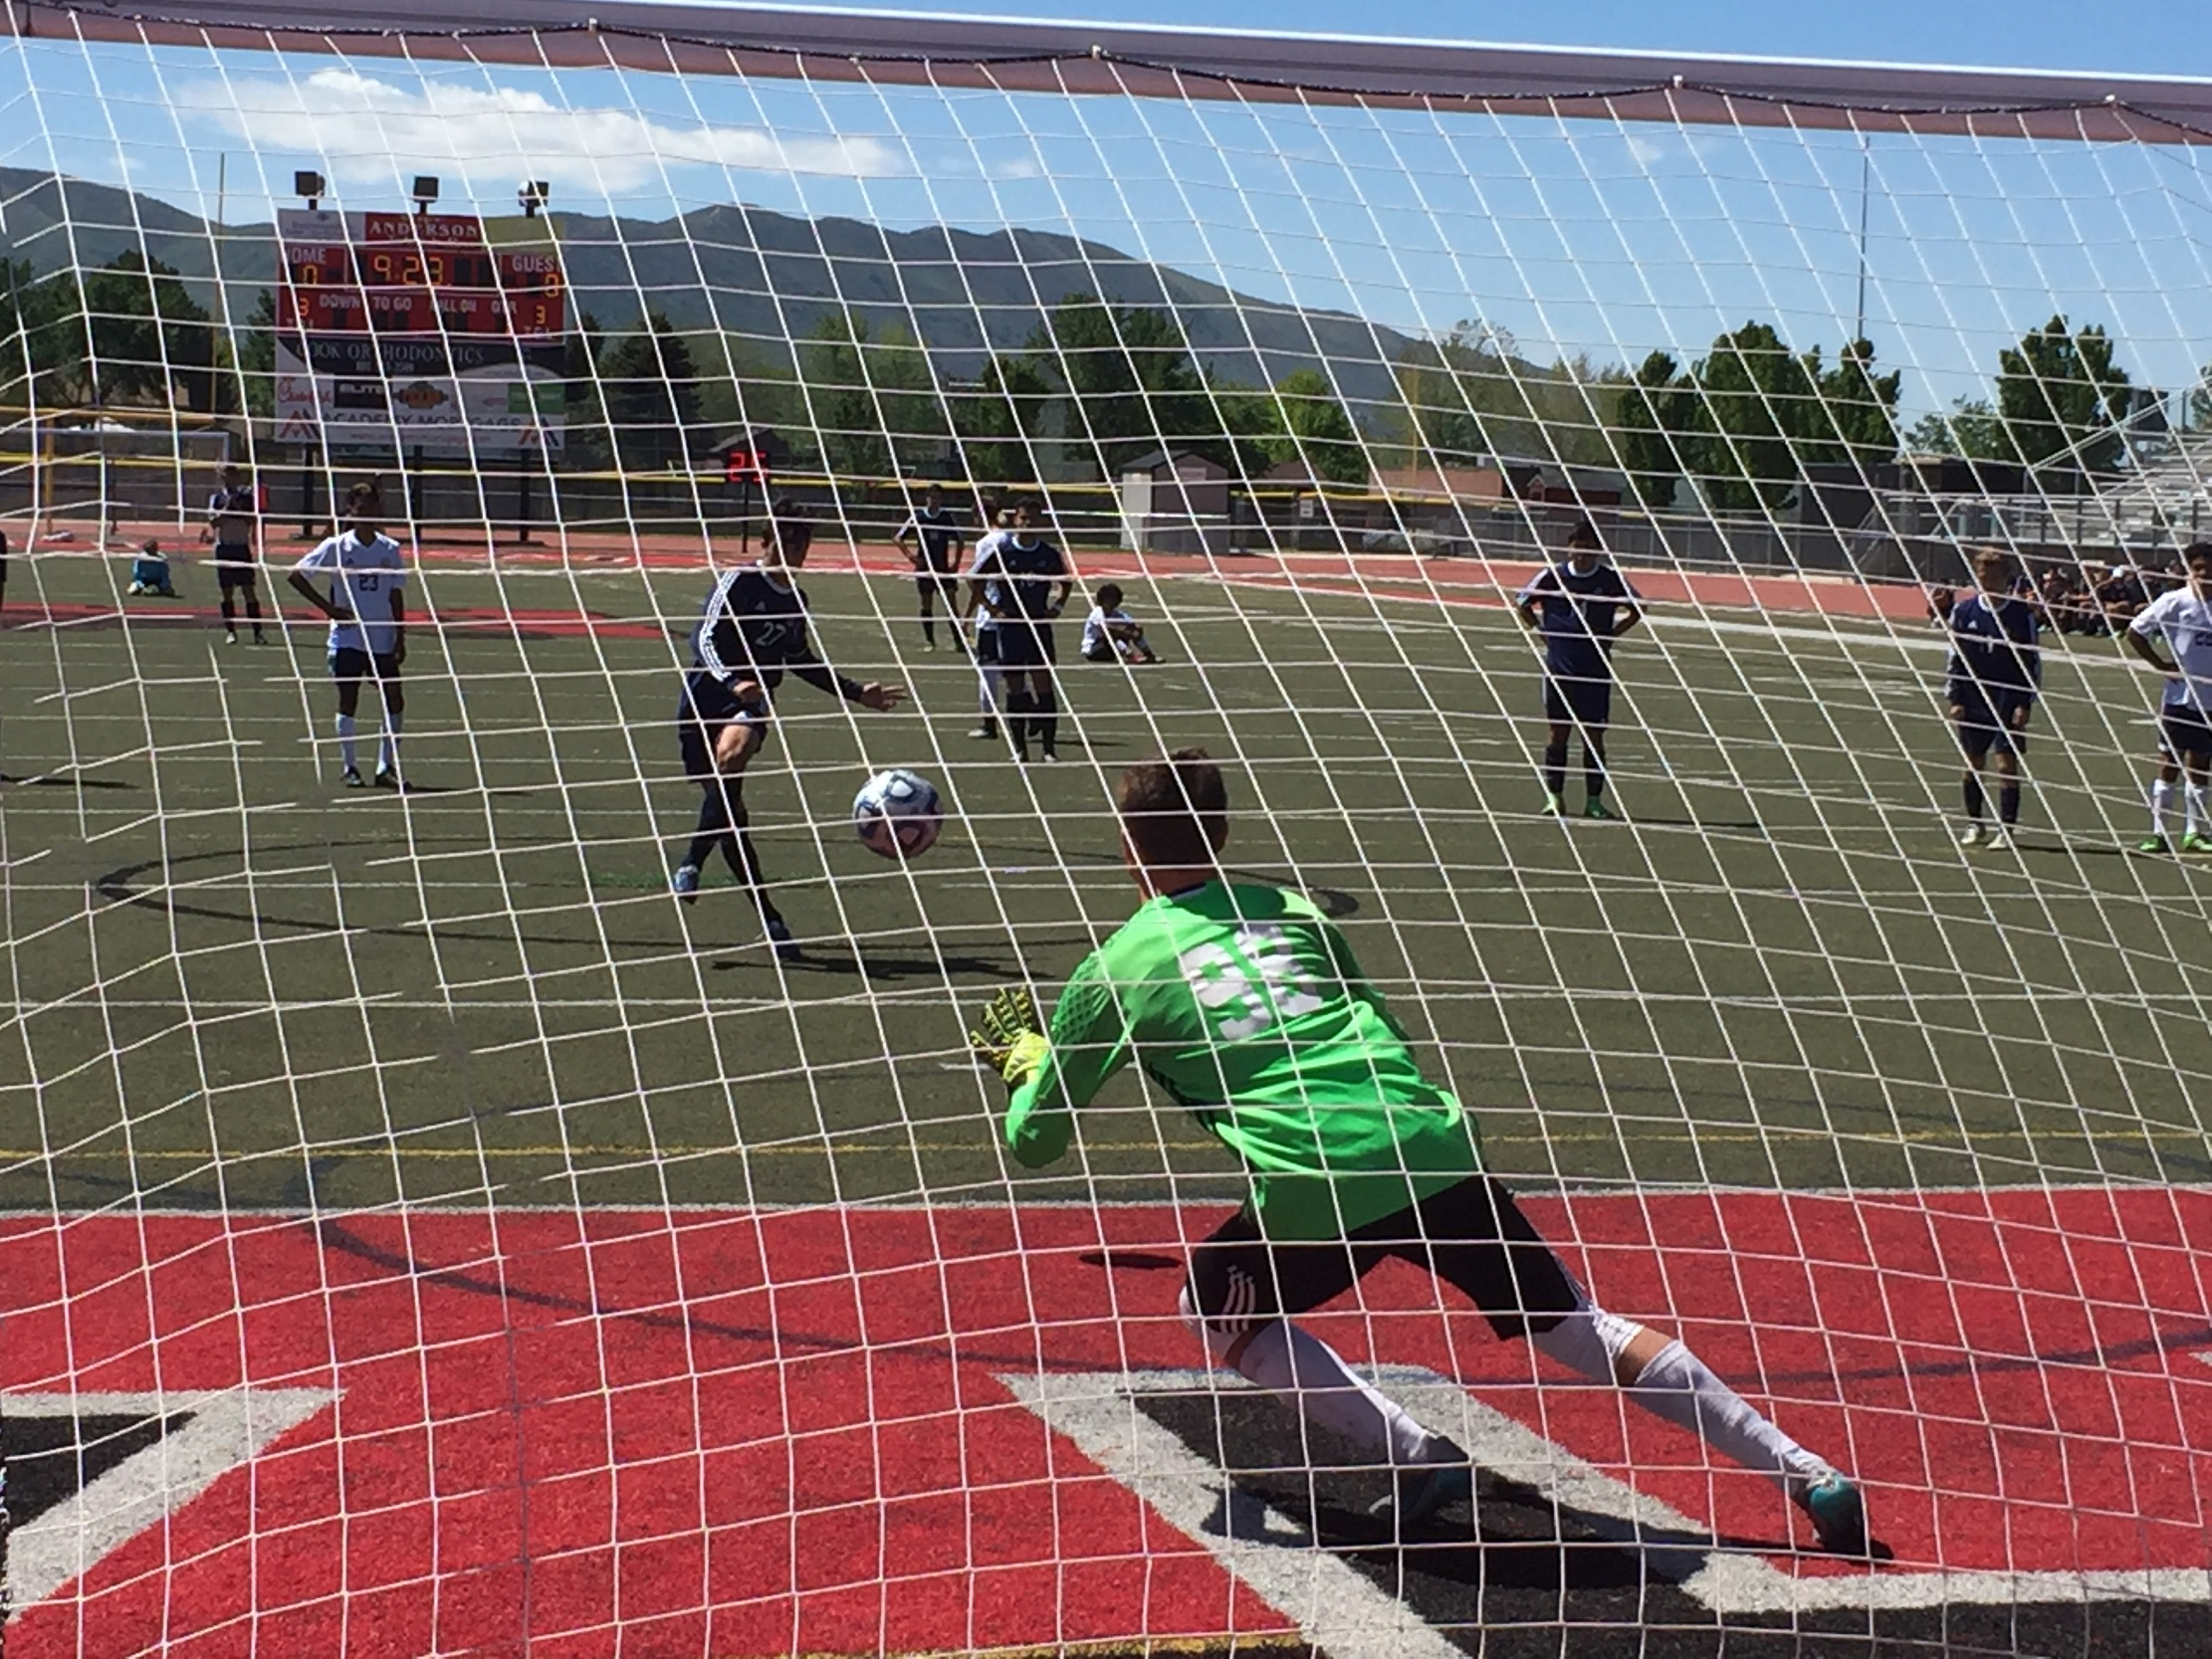 Quinn Hargis (in green) made a spectacular save on a penalty kick in the first half, Snow Canyon vs. Juan Diego, 3A state soccer championship, Sandy, Utah, May 14, 2016 | Photo by A.J. Griffin, St. George News